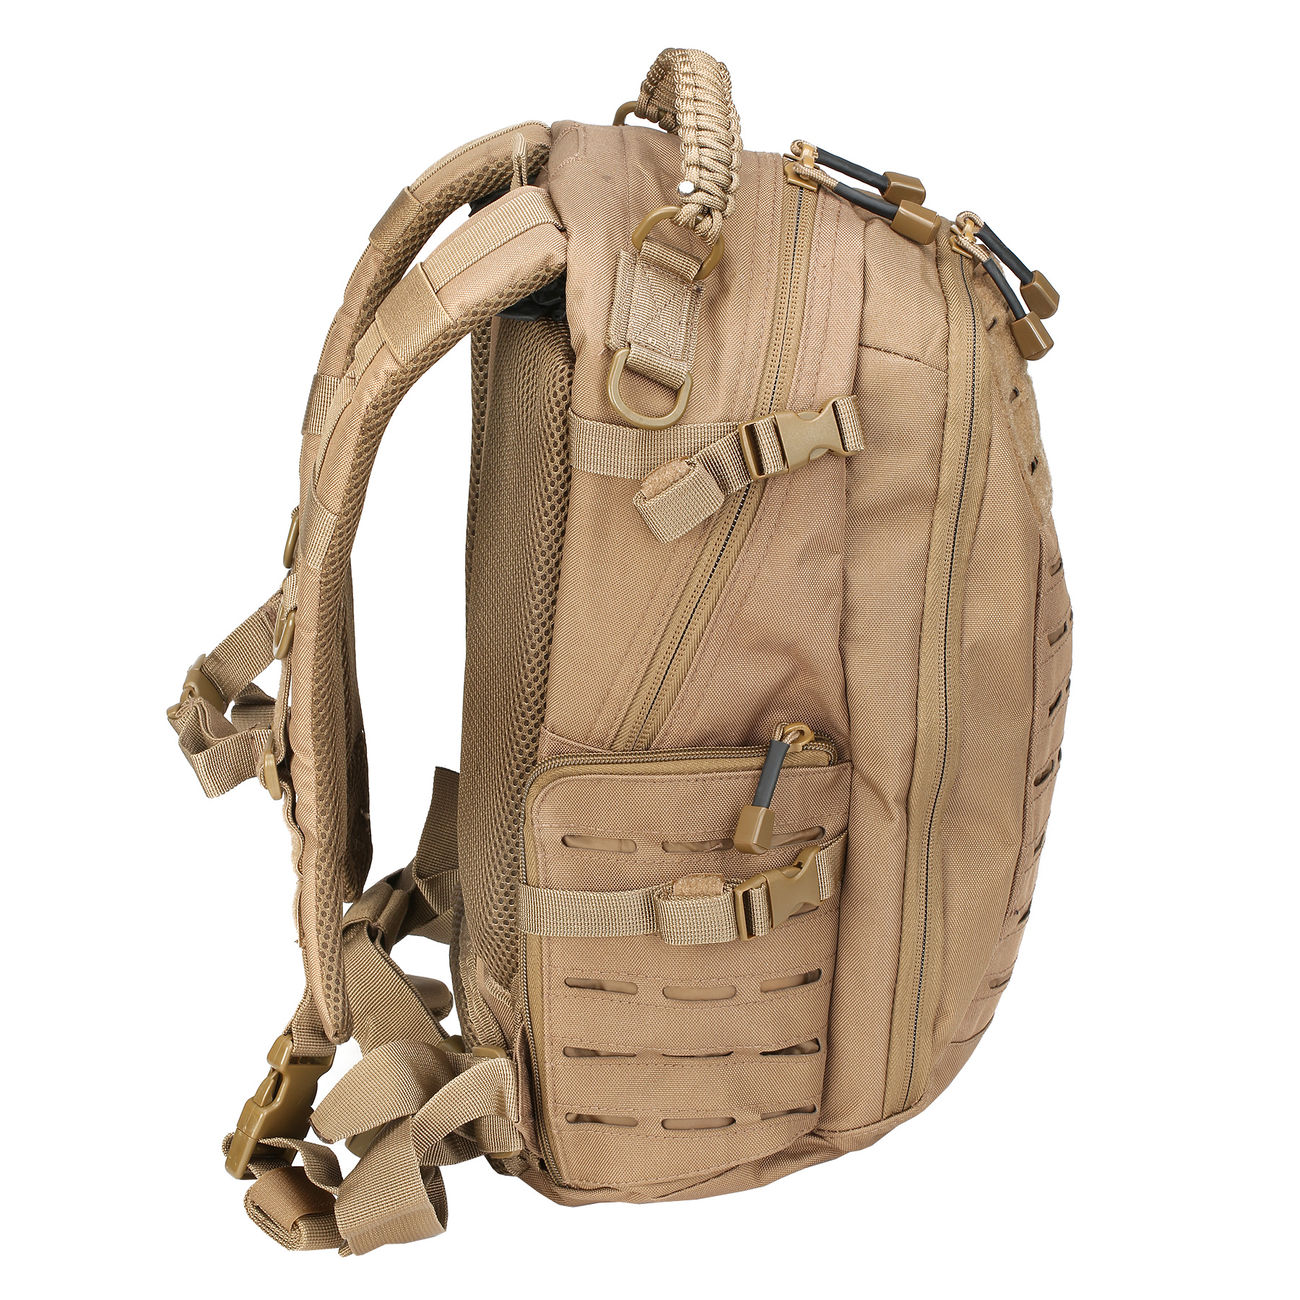 3c7547f5eb764 Mil-Tec Rucksack Mission Pack Laser Cut Small dark coyote günstig ...